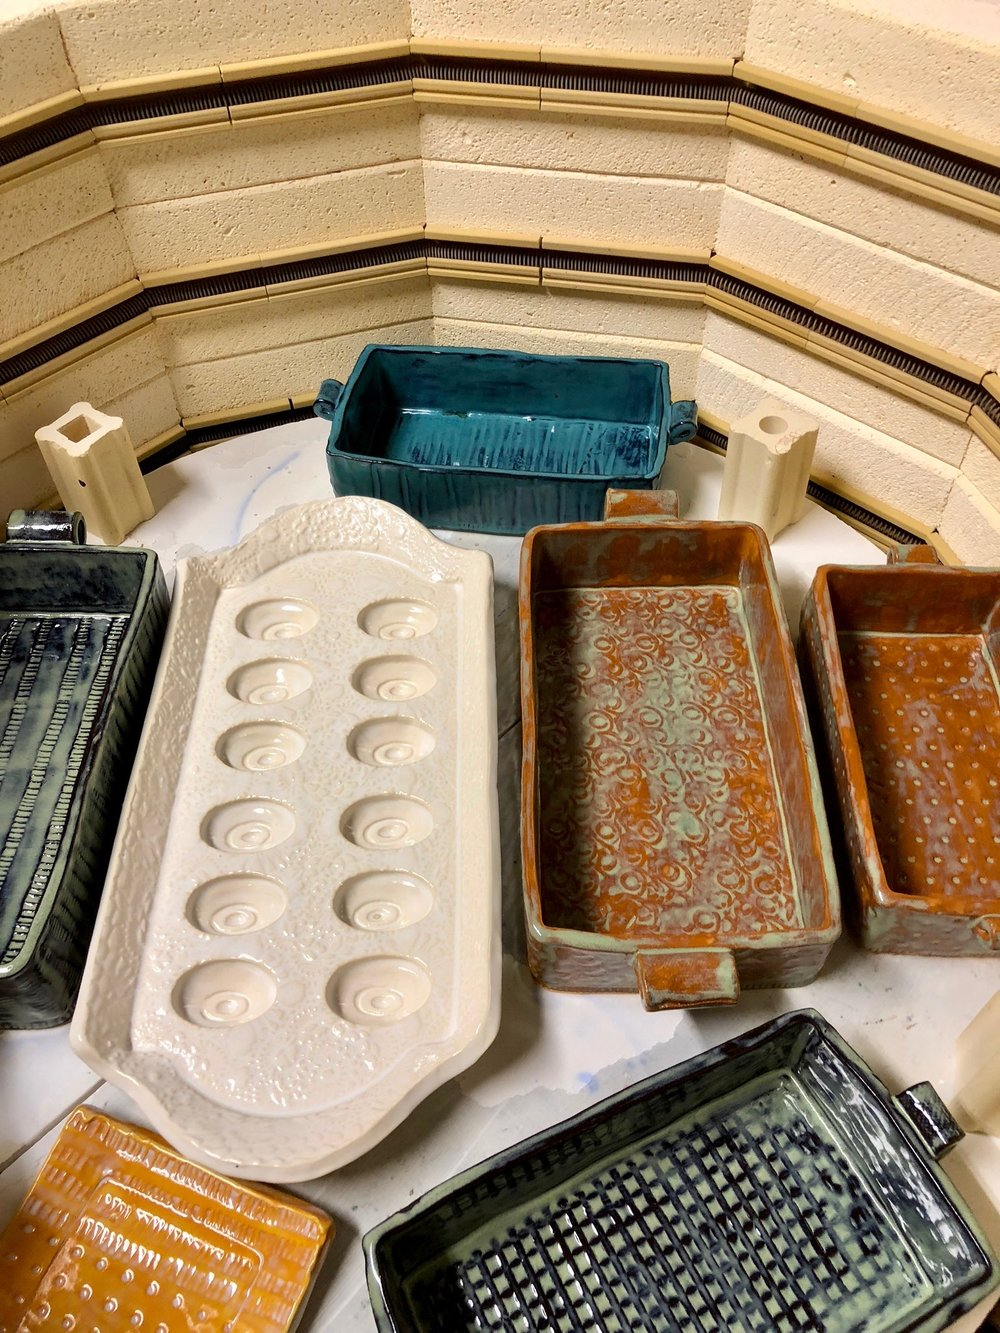 kiln shelf.jpg